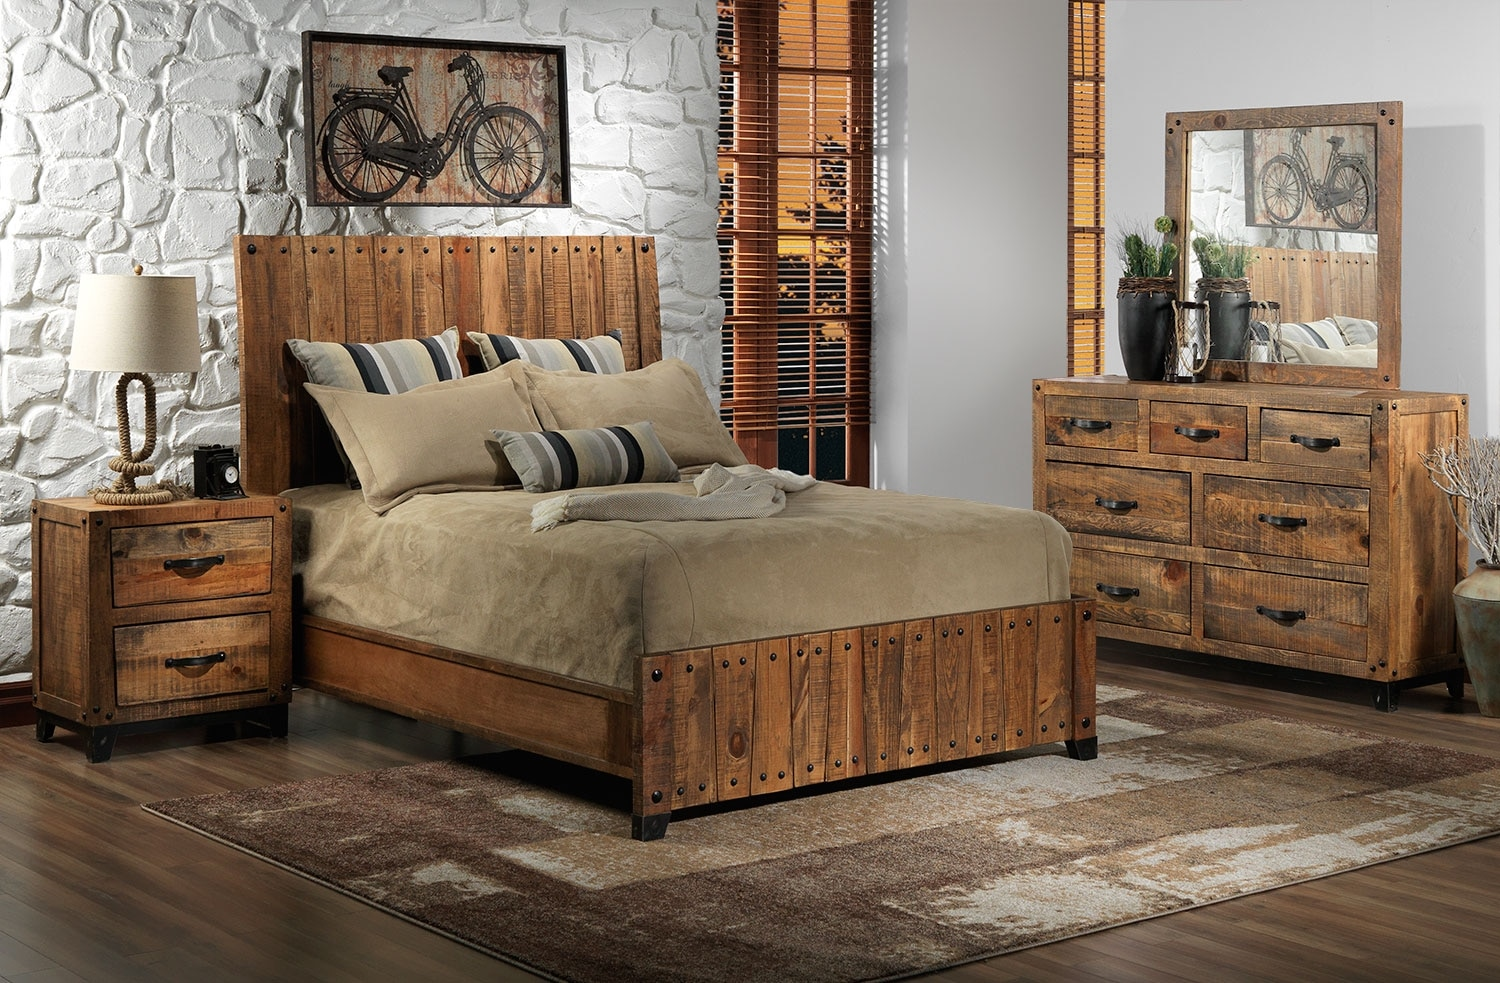 Maya 5-Piece Queen Bedroom Set - Rustic Pine